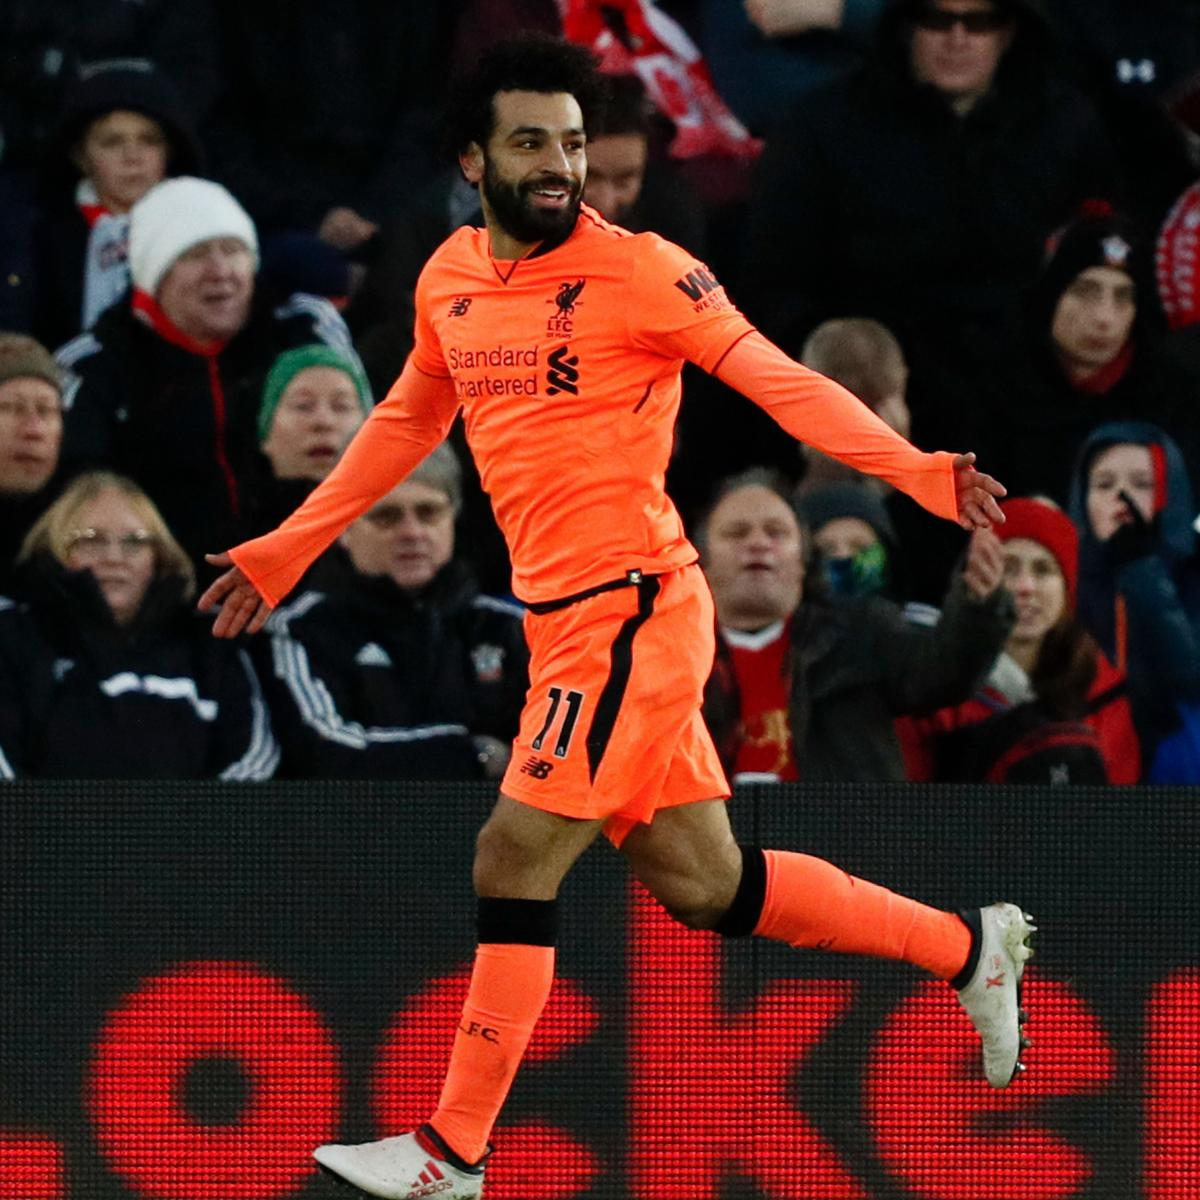 Liverpool News When Did The Premier League S Finest: EPL Table: 2018 Premier League Standings After Sunday's